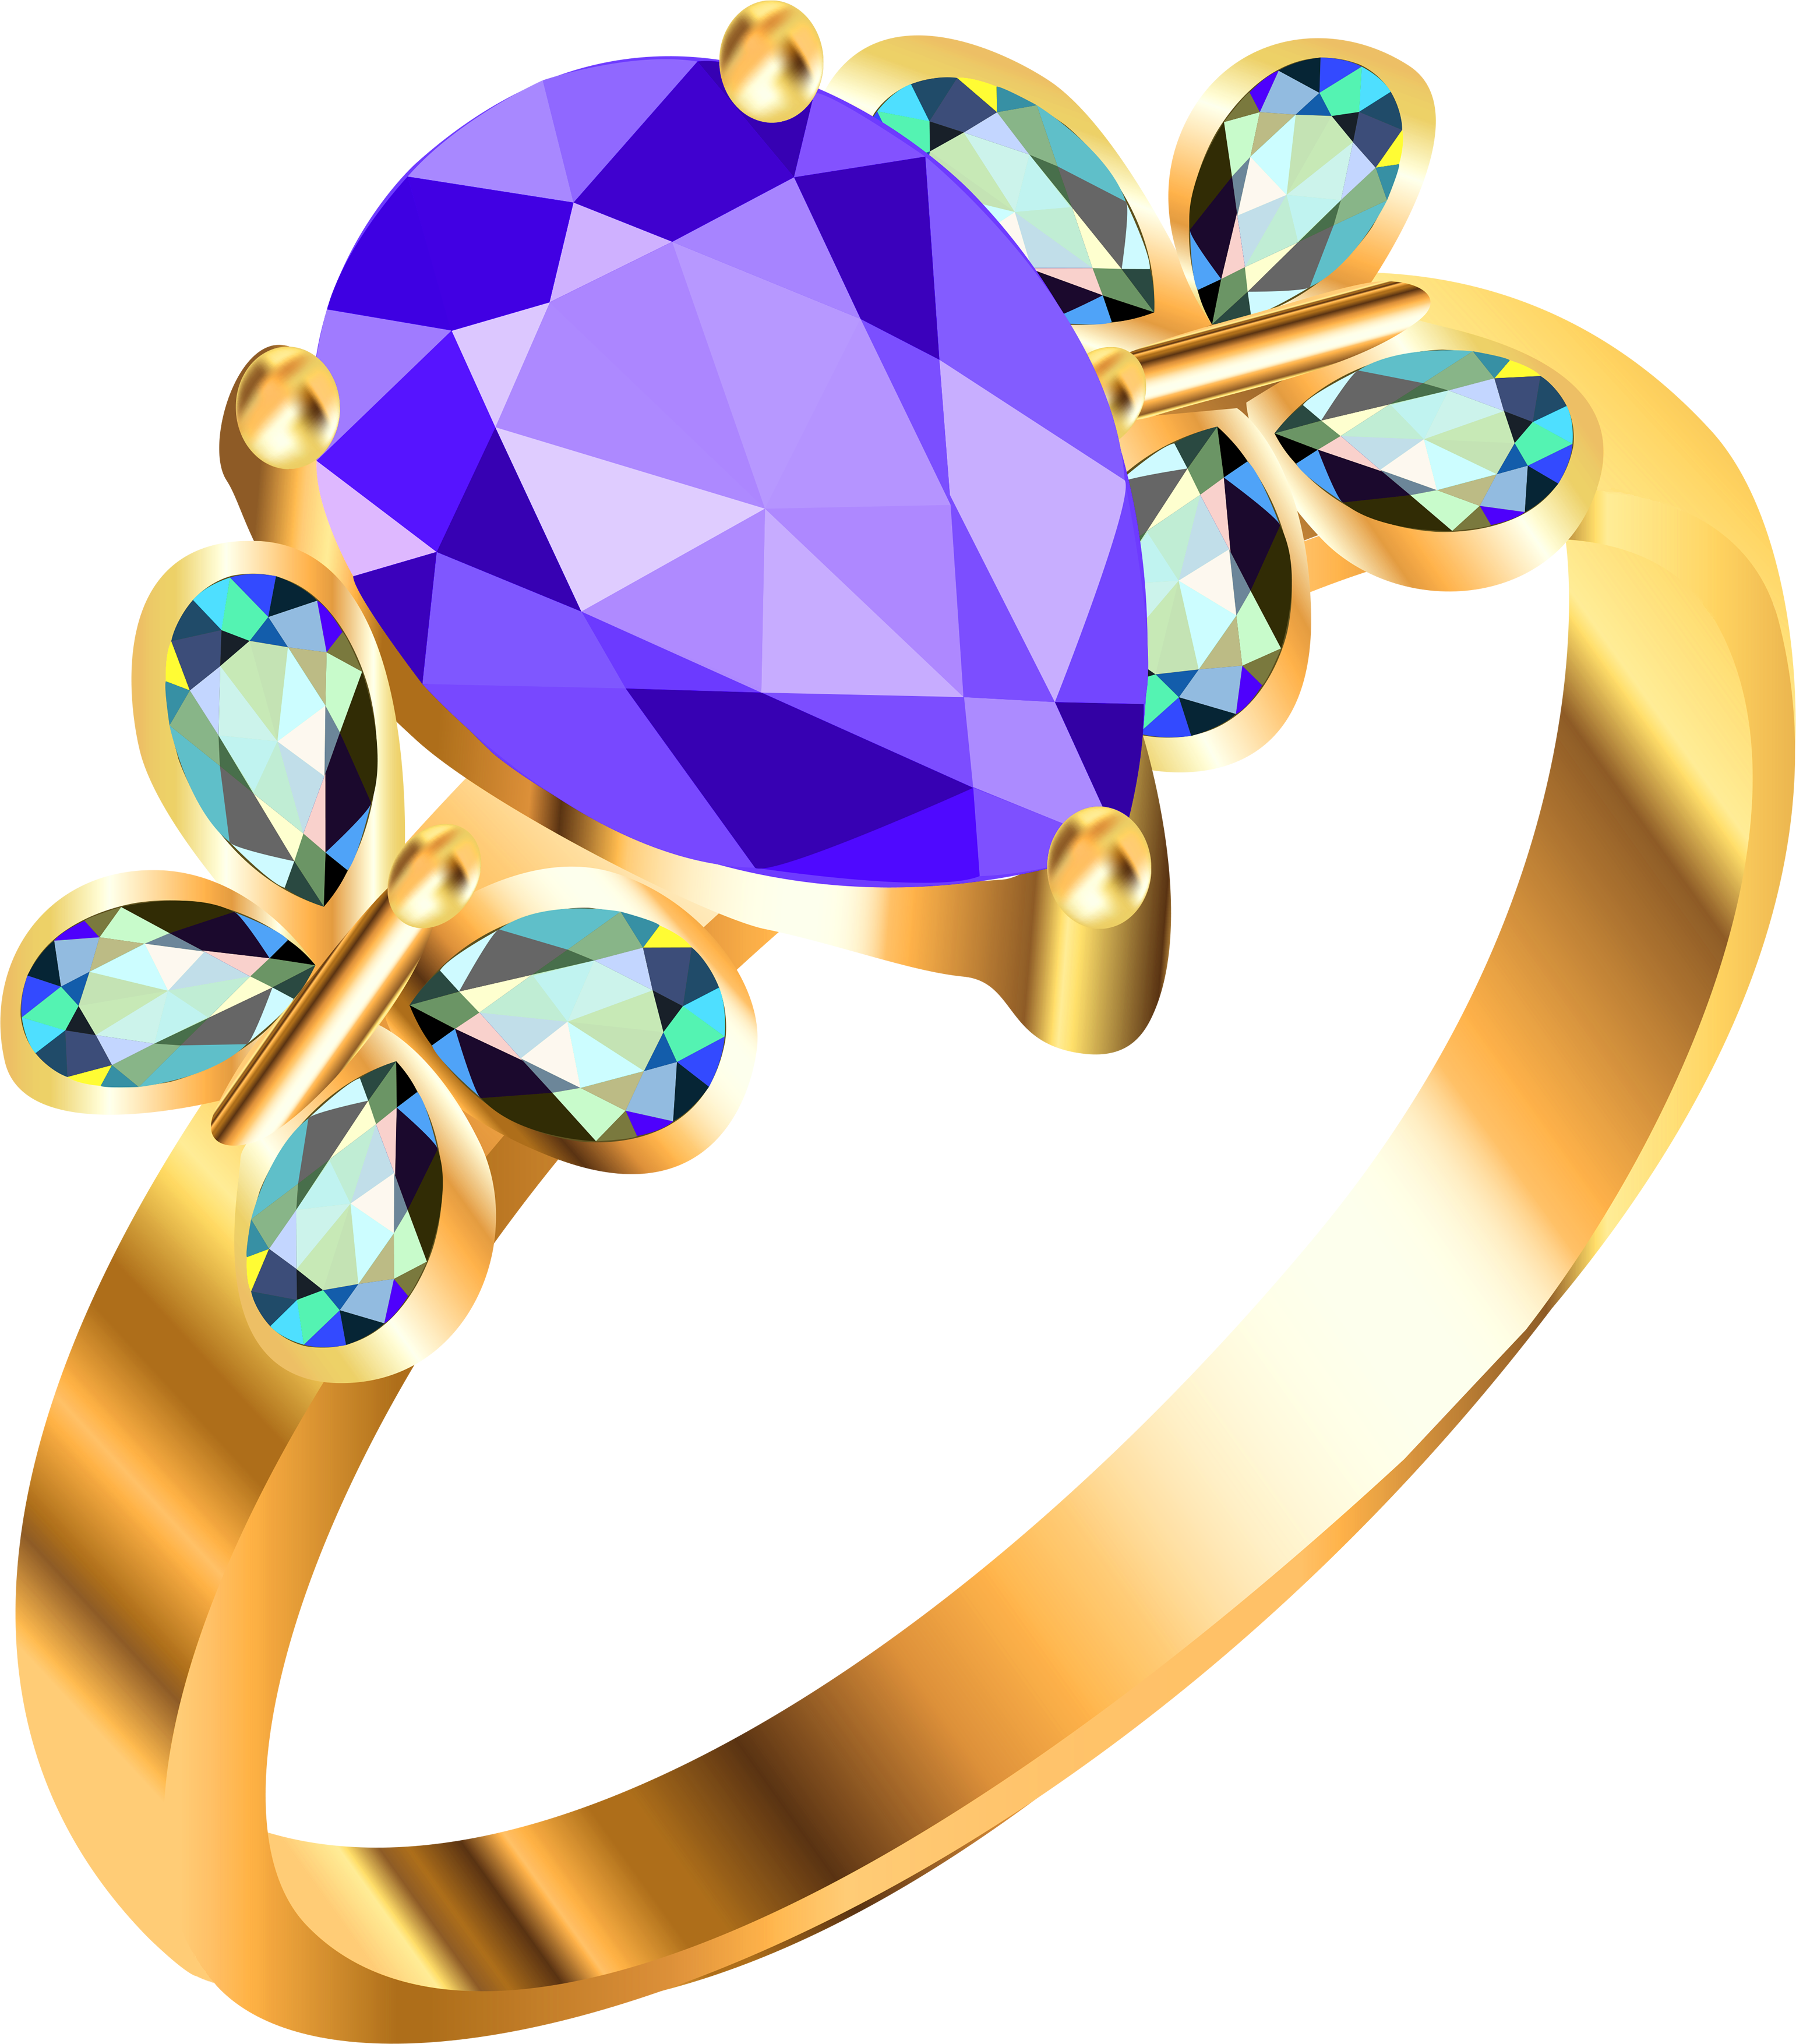 Jewelry Clipart & Jewelry Clip Art Images.